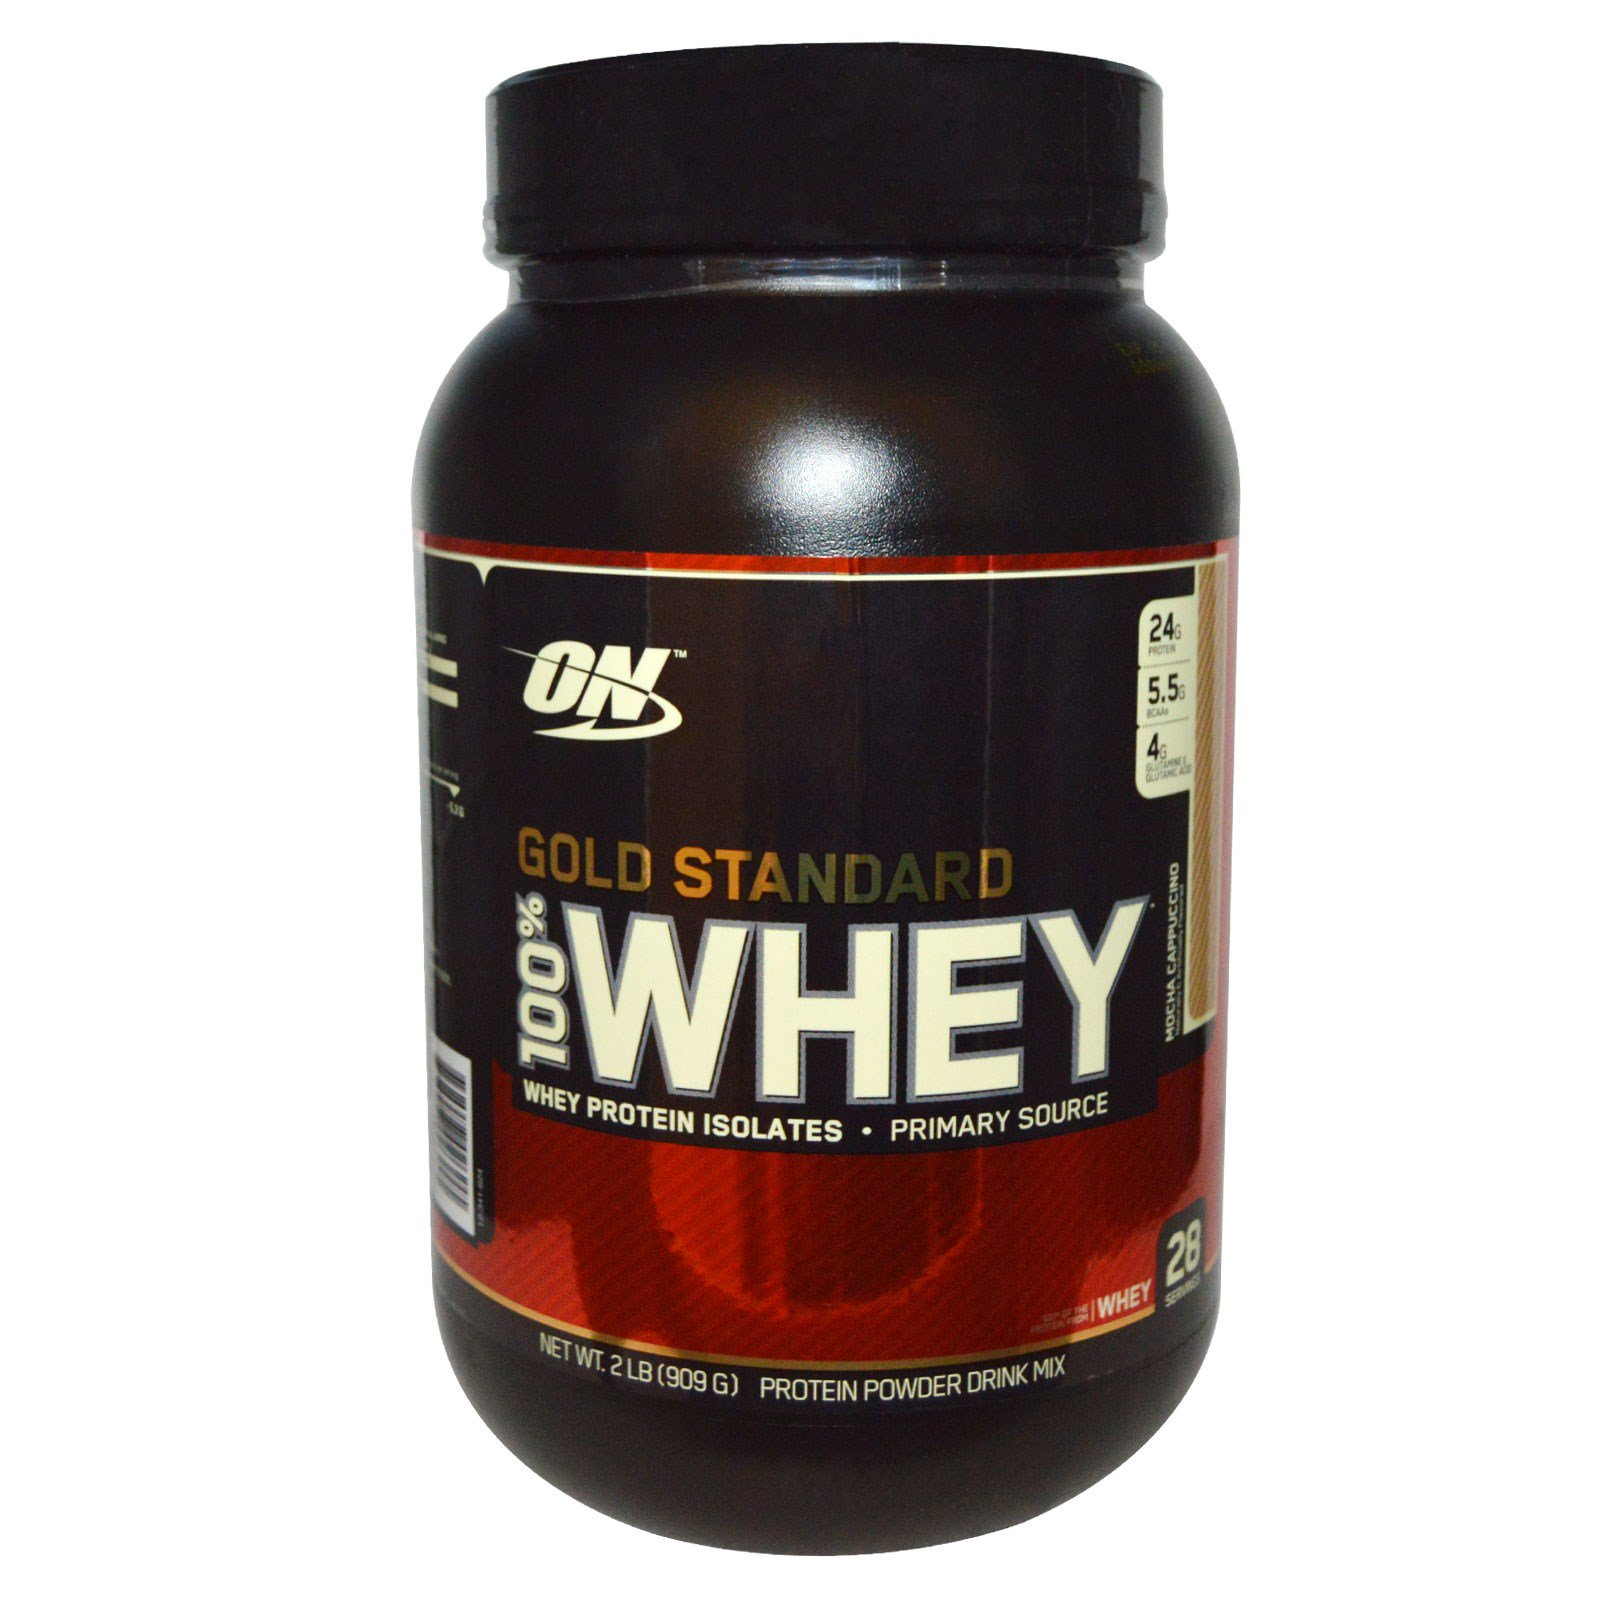 on whey protein gold standard how to use